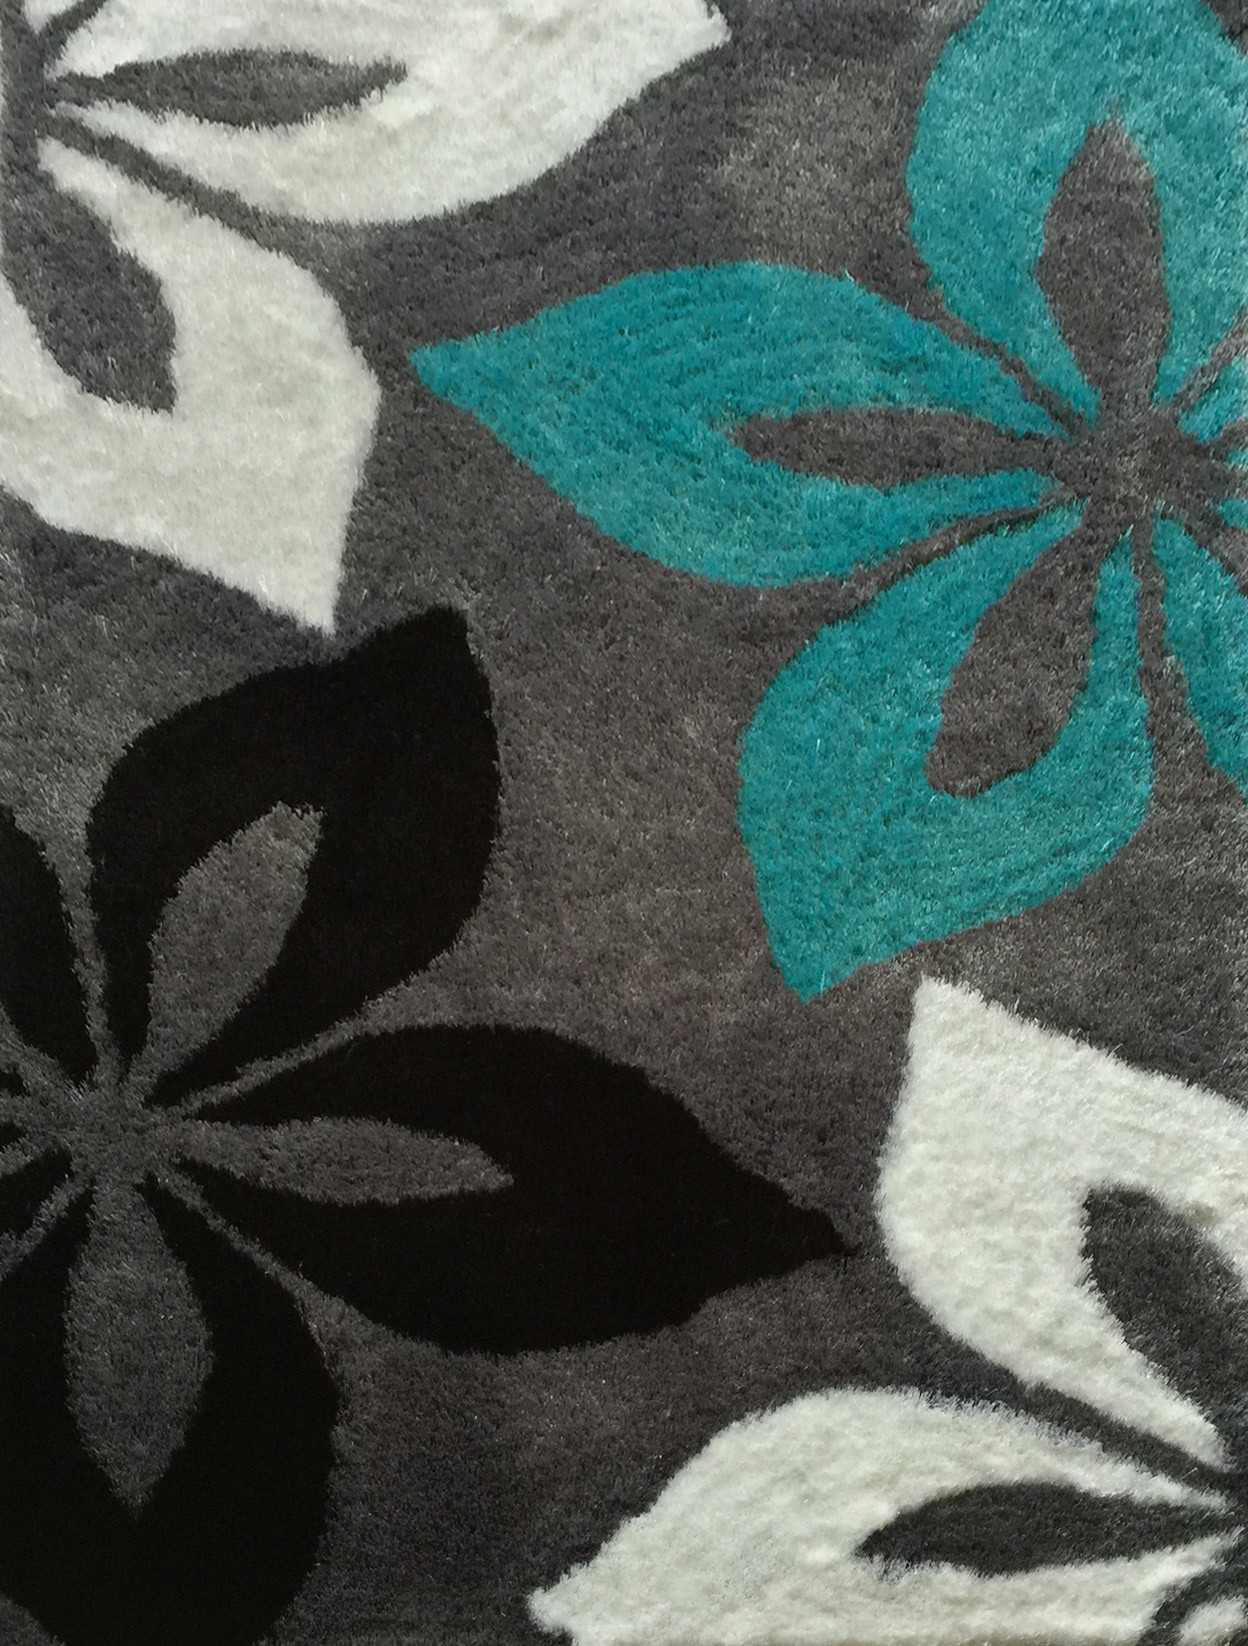 Popular ... Exclusive Ideas Turquoise Throw Rugs Modern Design Floor Smooth  Turquoise Area turquoise throw rugs